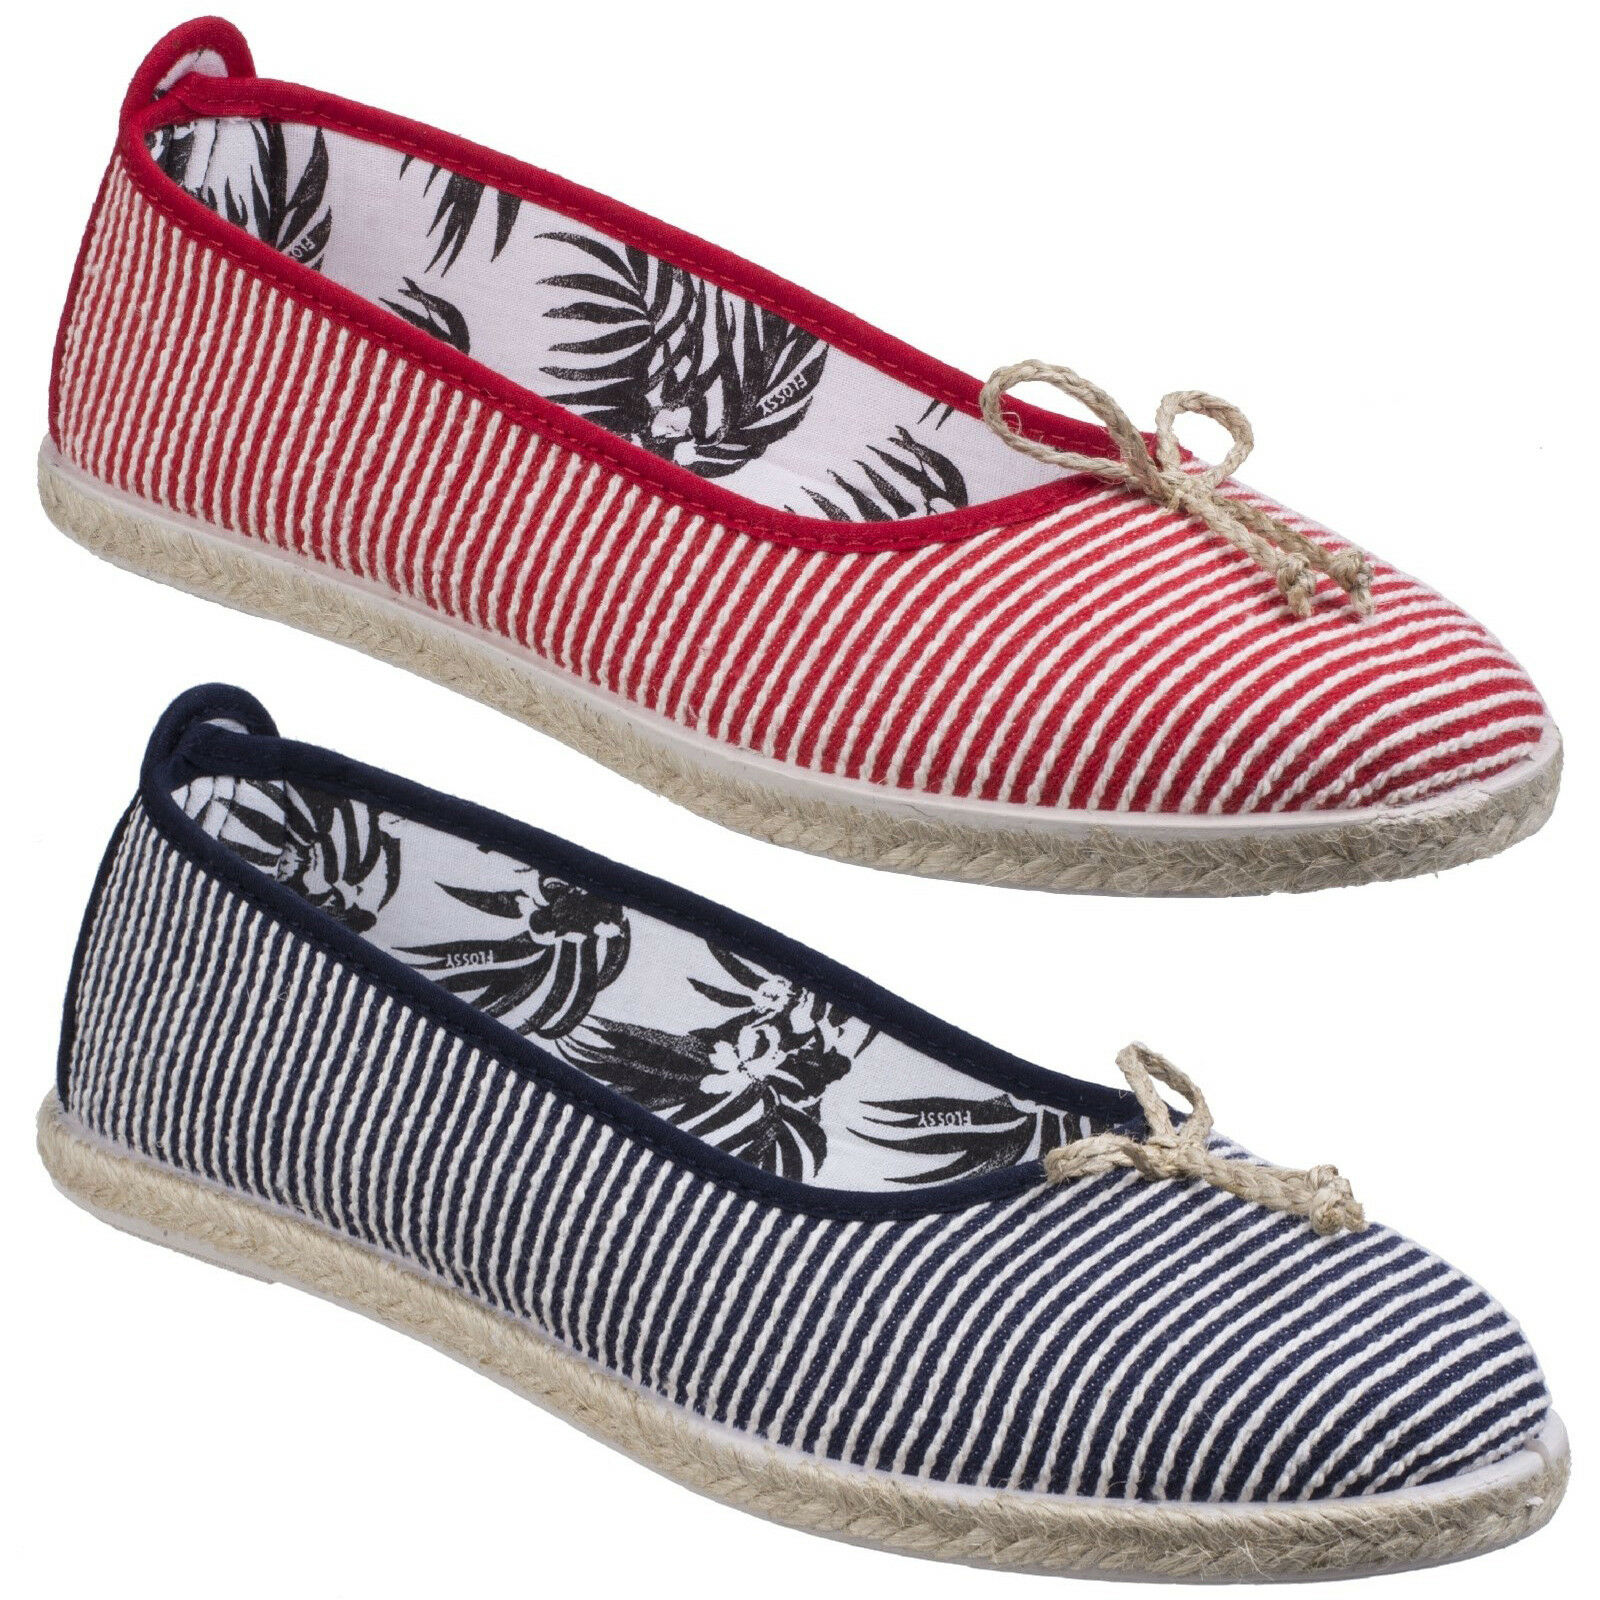 Flossy Sabroso Espadrilles Summer Slip On Canvas Pumps Plimsoles shoes Womens